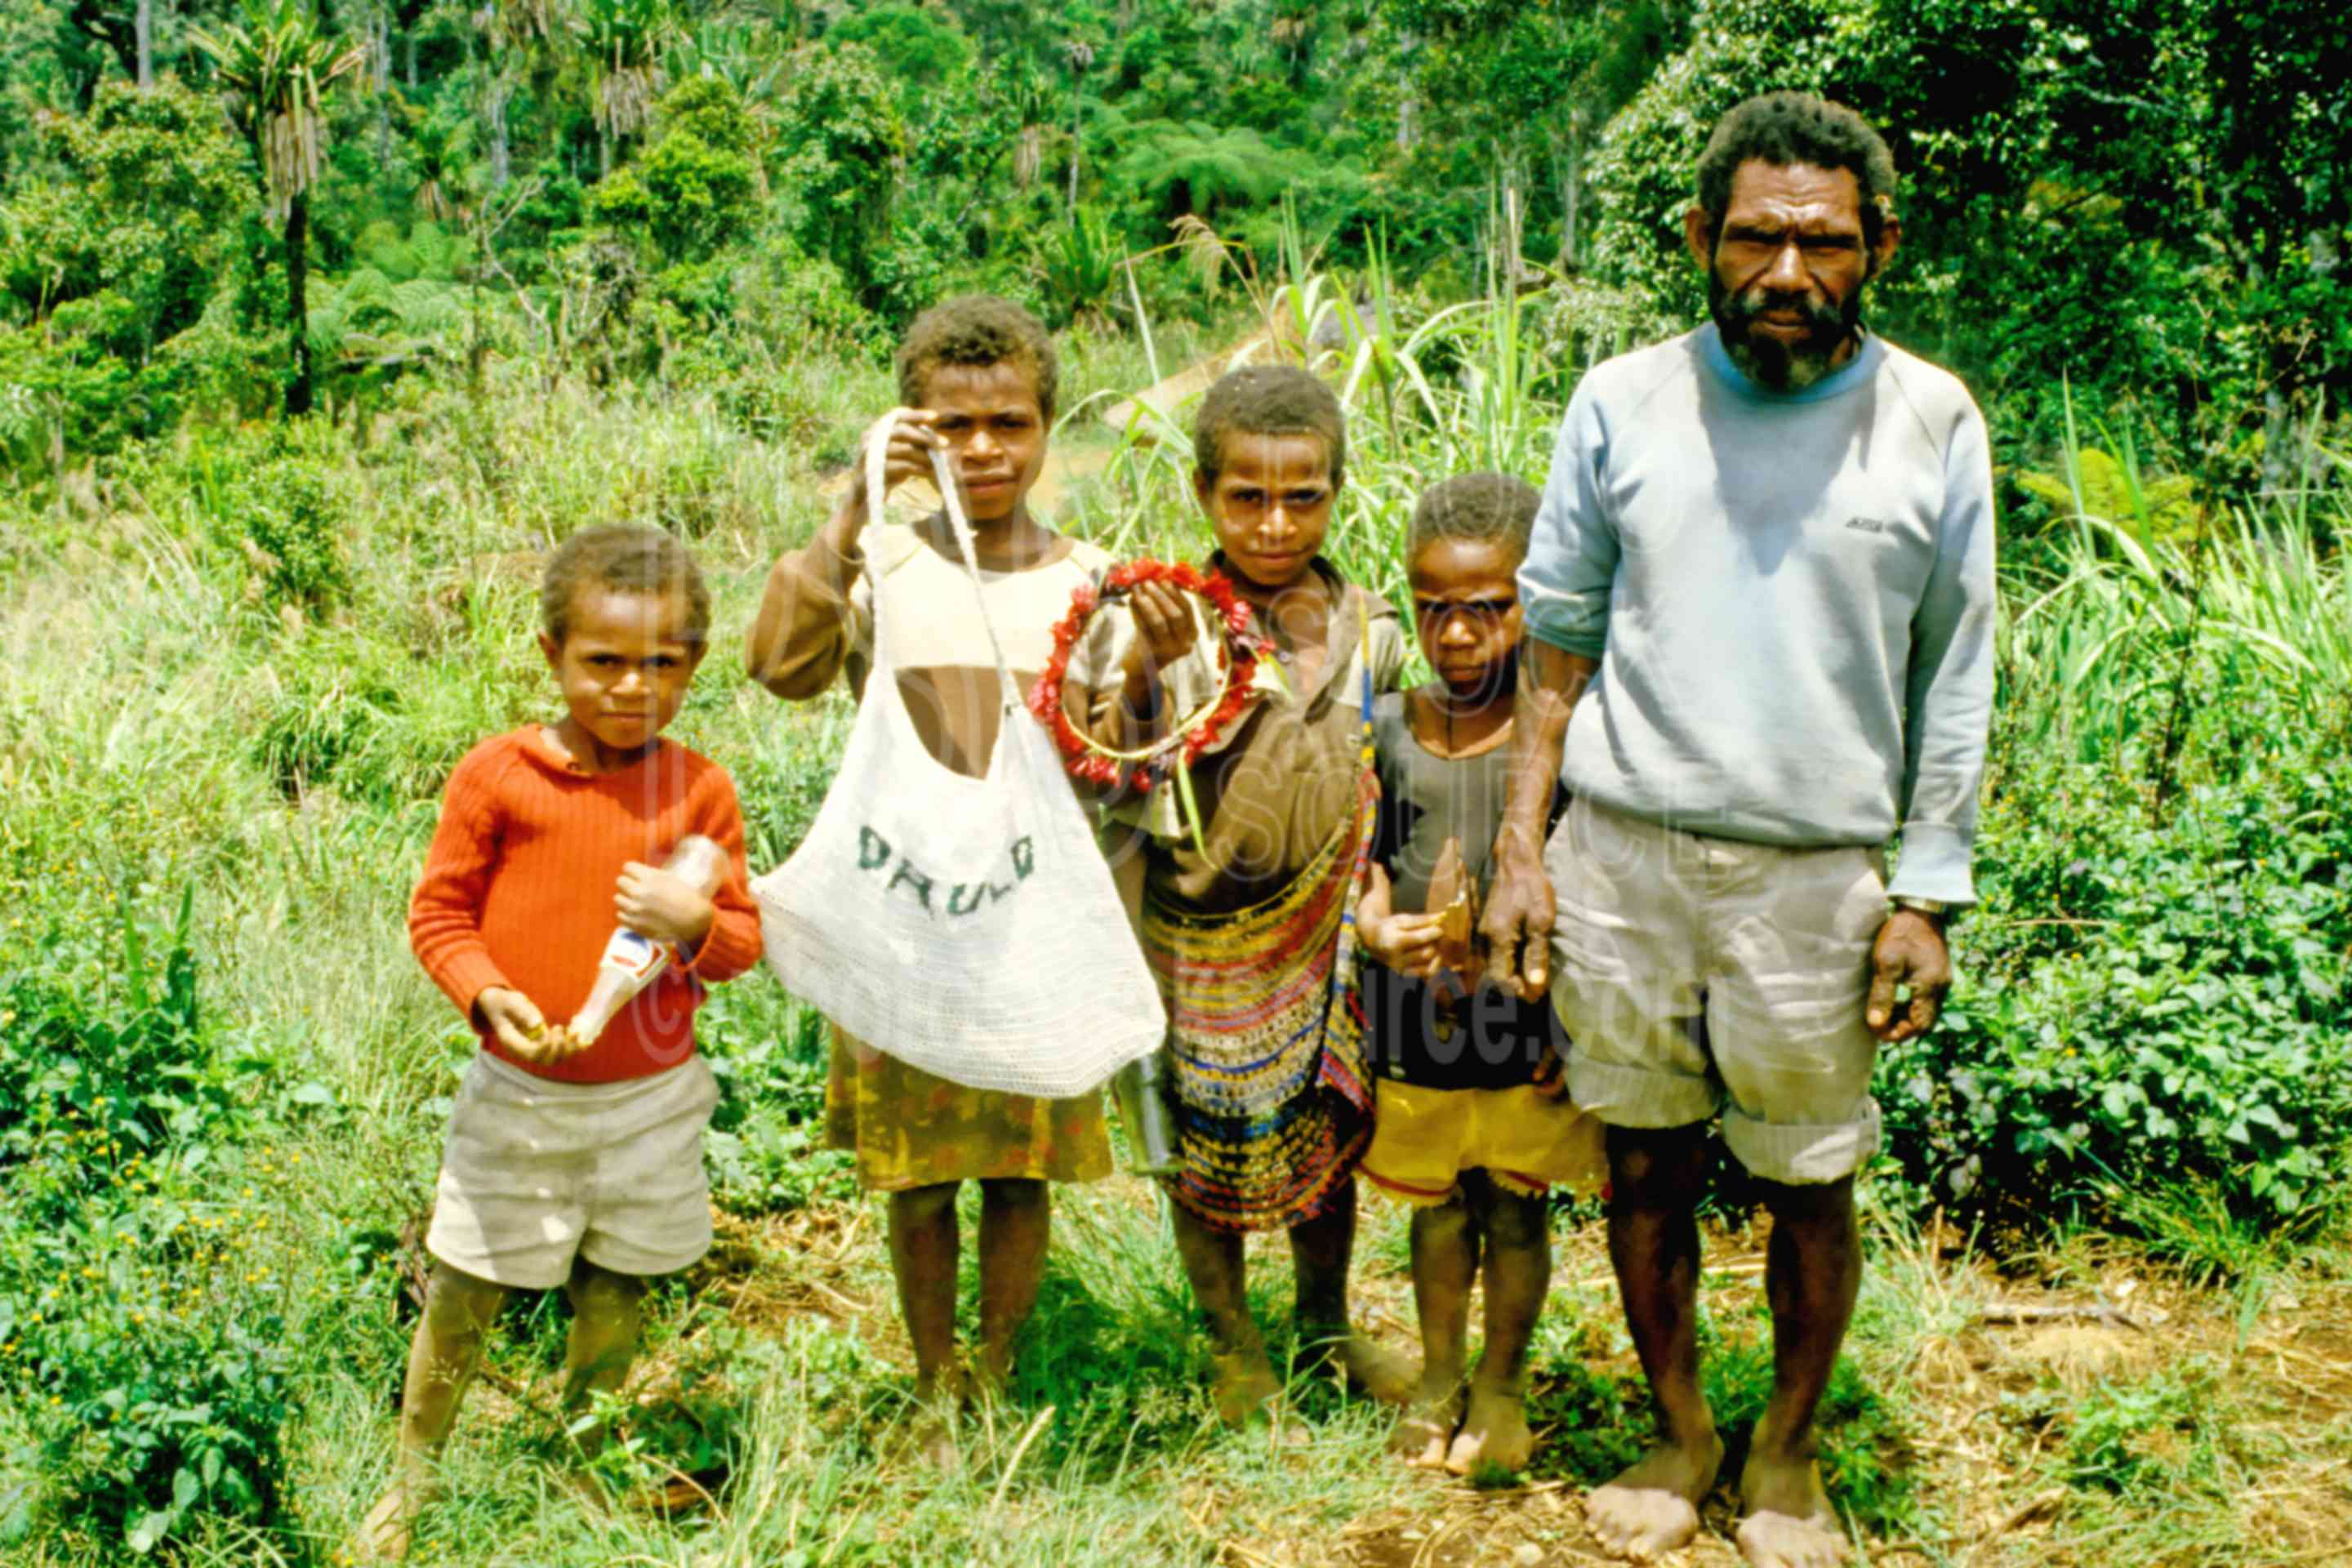 Man and Children,mans,children,boys,girl,child,png markets